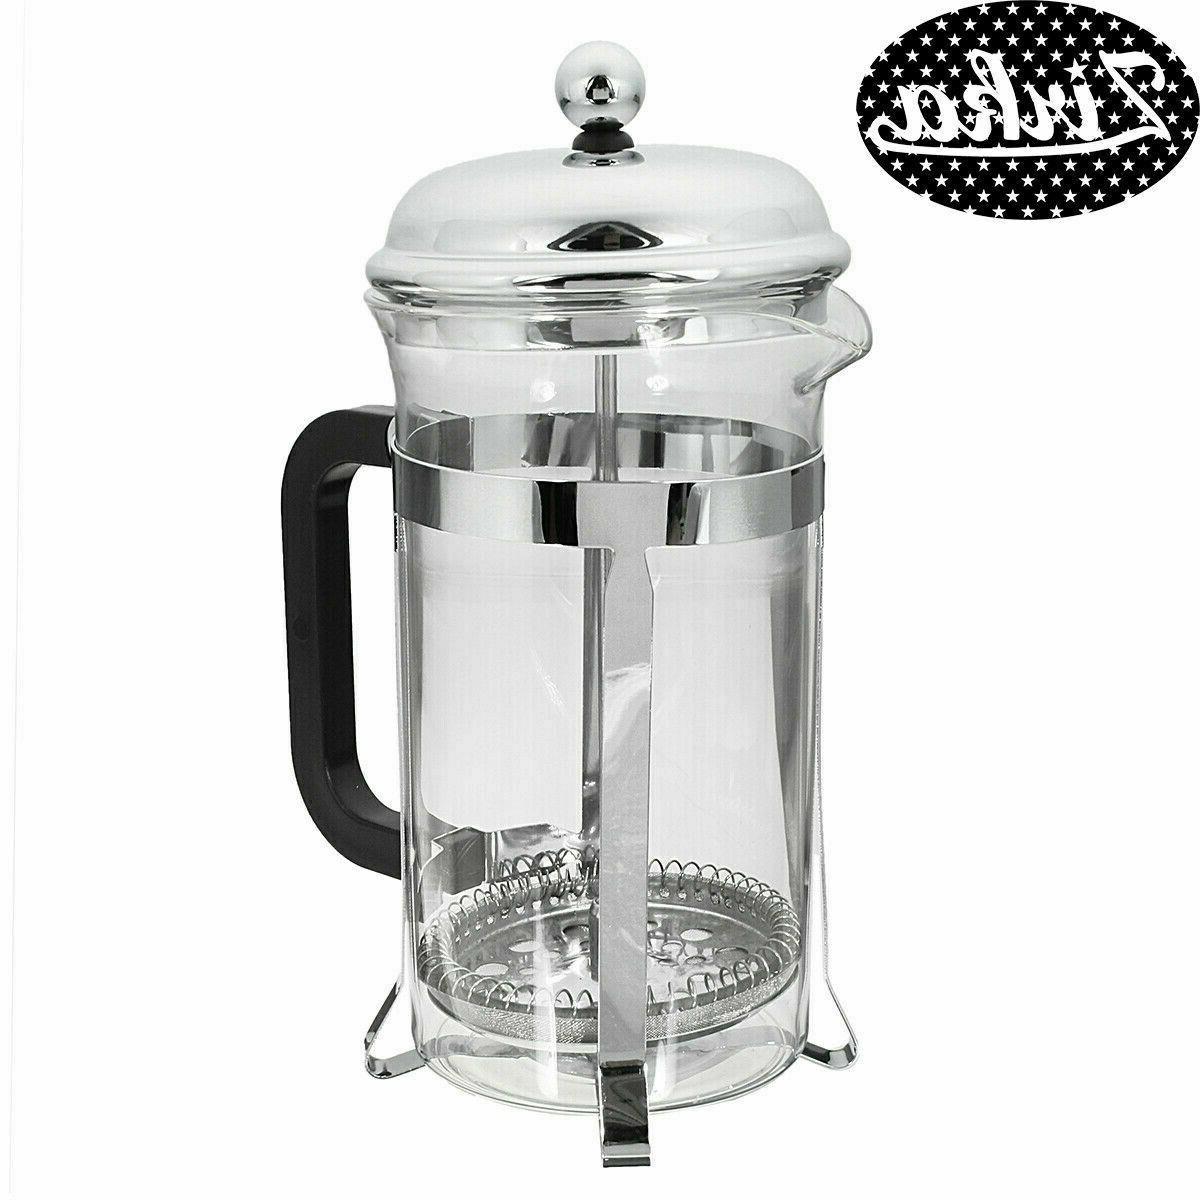 32OZ Stainless Steel French Cafetiere Tea